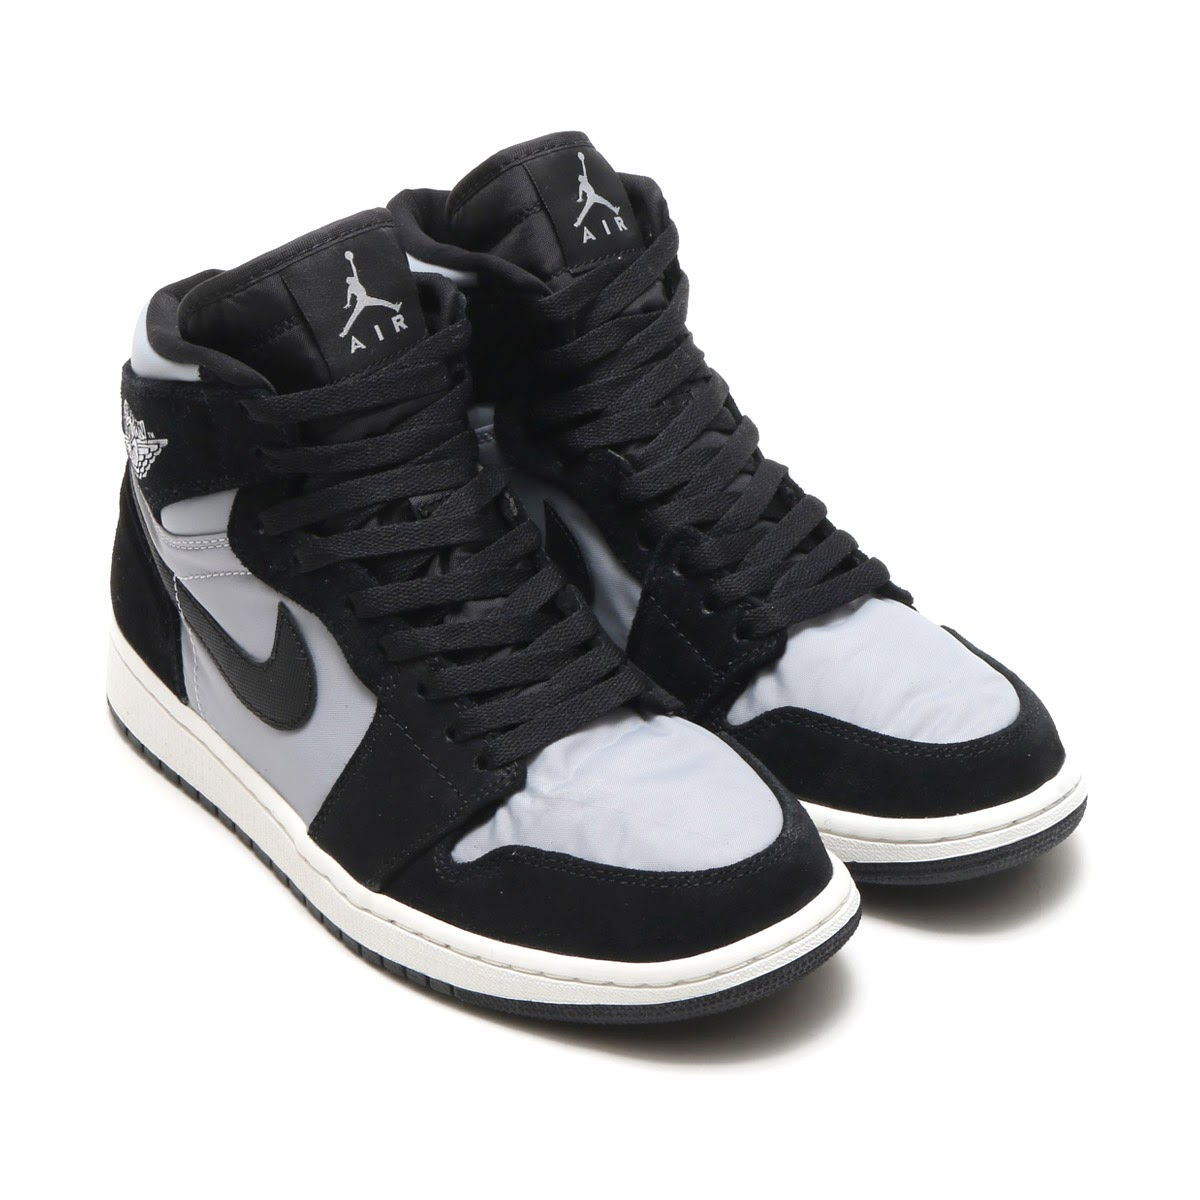 NIKE AIR JORDAN 1 RETRO HIGH PREM(ナイキ エア ジョーダン 1 レトロ ハイ プレミアム)(BLACK/WOLF GREY-SUMMIT WHITE)17HO-S